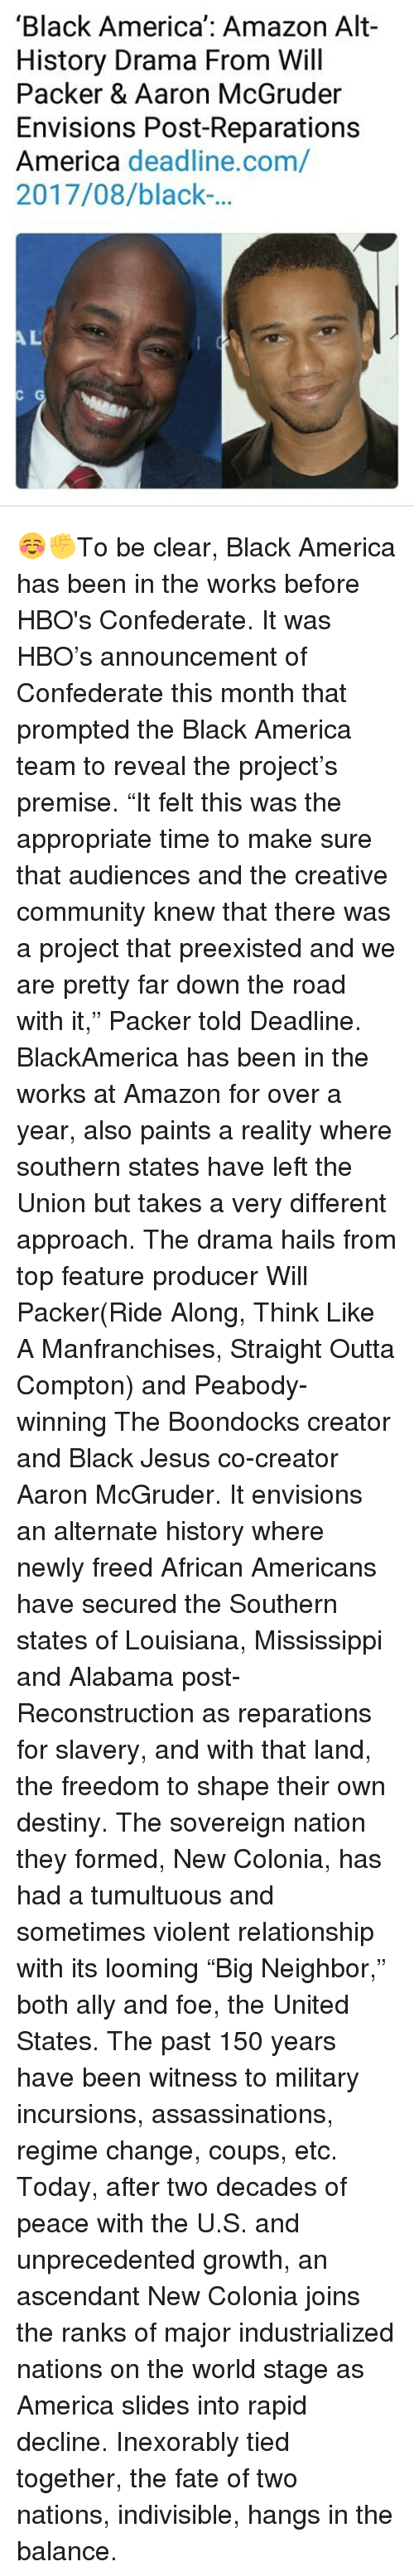 "Amazon, America, and Community: 'Black America': Amazon Alt-  History Drama From Will  Packer & Aaron McGruder  Envisions Post-Reparations  America deadline.com/  2017/08/black-...  AL ☺️✊To be clear, Black America has been in the works before HBO's Confederate. It was HBO's announcement of Confederate this month that prompted the Black America team to reveal the project's premise. ""It felt this was the appropriate time to make sure that audiences and the creative community knew that there was a project that preexisted and we are pretty far down the road with it,"" Packer told Deadline. BlackAmerica has been in the works at Amazon for over a year, also paints a reality where southern states have left the Union but takes a very different approach. The drama hails from top feature producer Will Packer(Ride Along, Think Like A Manfranchises, Straight Outta Compton) and Peabody-winning The Boondocks creator and Black Jesus co-creator Aaron McGruder. It envisions an alternate history where newly freed African Americans have secured the Southern states of Louisiana, Mississippi and Alabama post-Reconstruction as reparations for slavery, and with that land, the freedom to shape their own destiny. The sovereign nation they formed, New Colonia, has had a tumultuous and sometimes violent relationship with its looming ""Big Neighbor,"" both ally and foe, the United States. The past 150 years have been witness to military incursions, assassinations, regime change, coups, etc. Today, after two decades of peace with the U.S. and unprecedented growth, an ascendant New Colonia joins the ranks of major industrialized nations on the world stage as America slides into rapid decline. Inexorably tied together, the fate of two nations, indivisible, hangs in the balance."